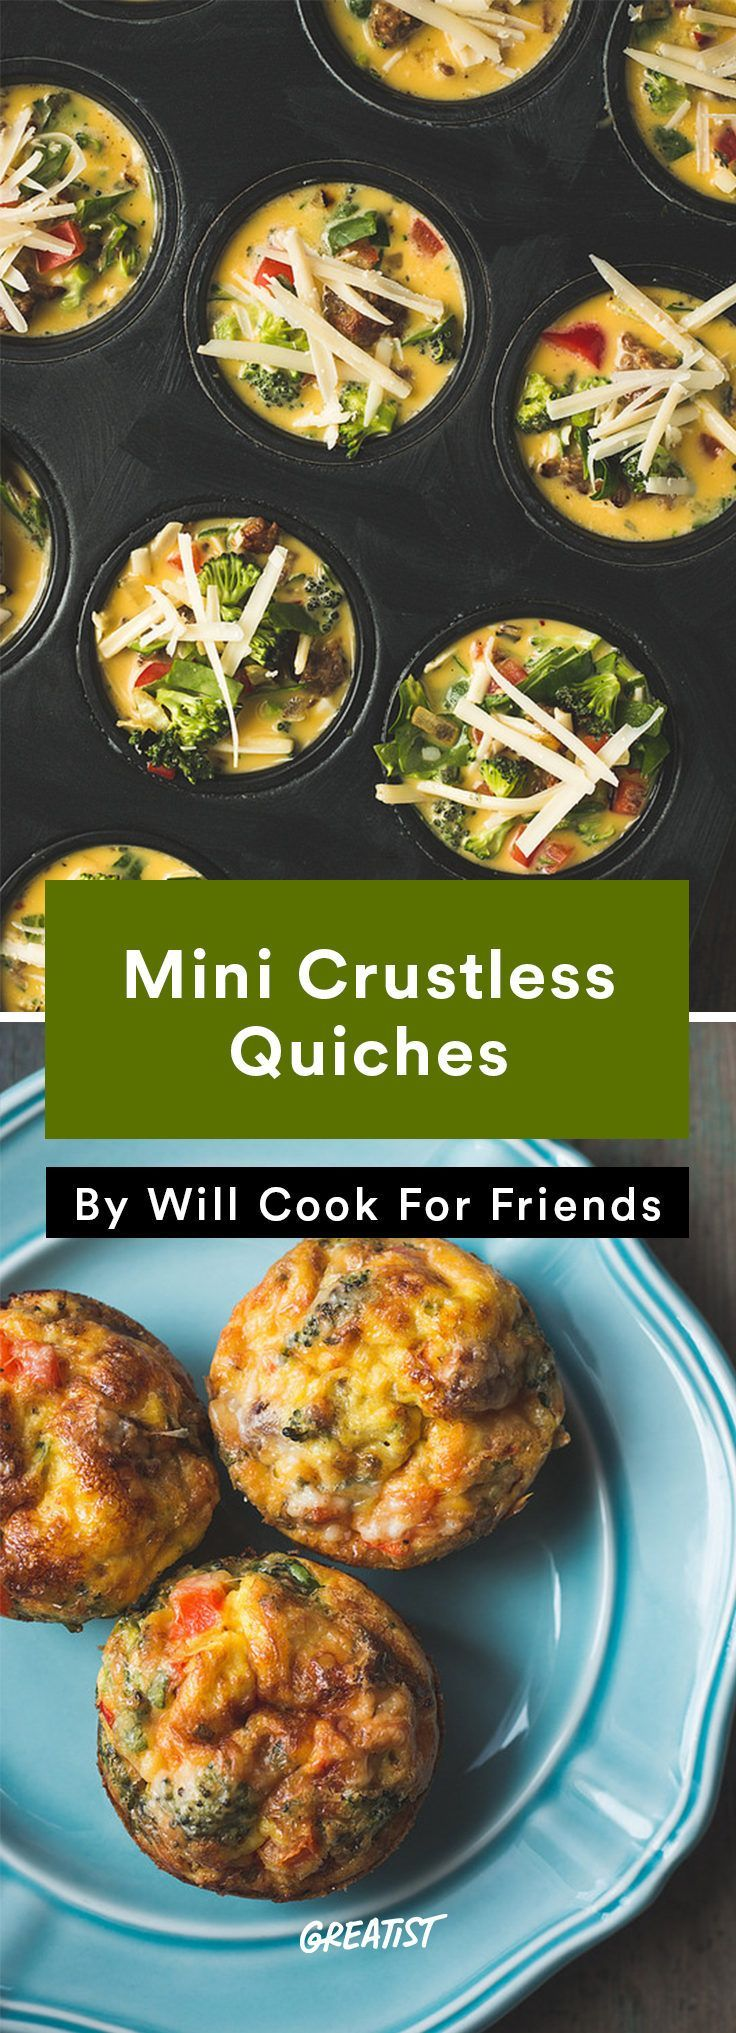 Mini Crustless Quiches; Easy low-carb high flavor mini quiches great as appetizers, snacks, breakfast, or anytime!